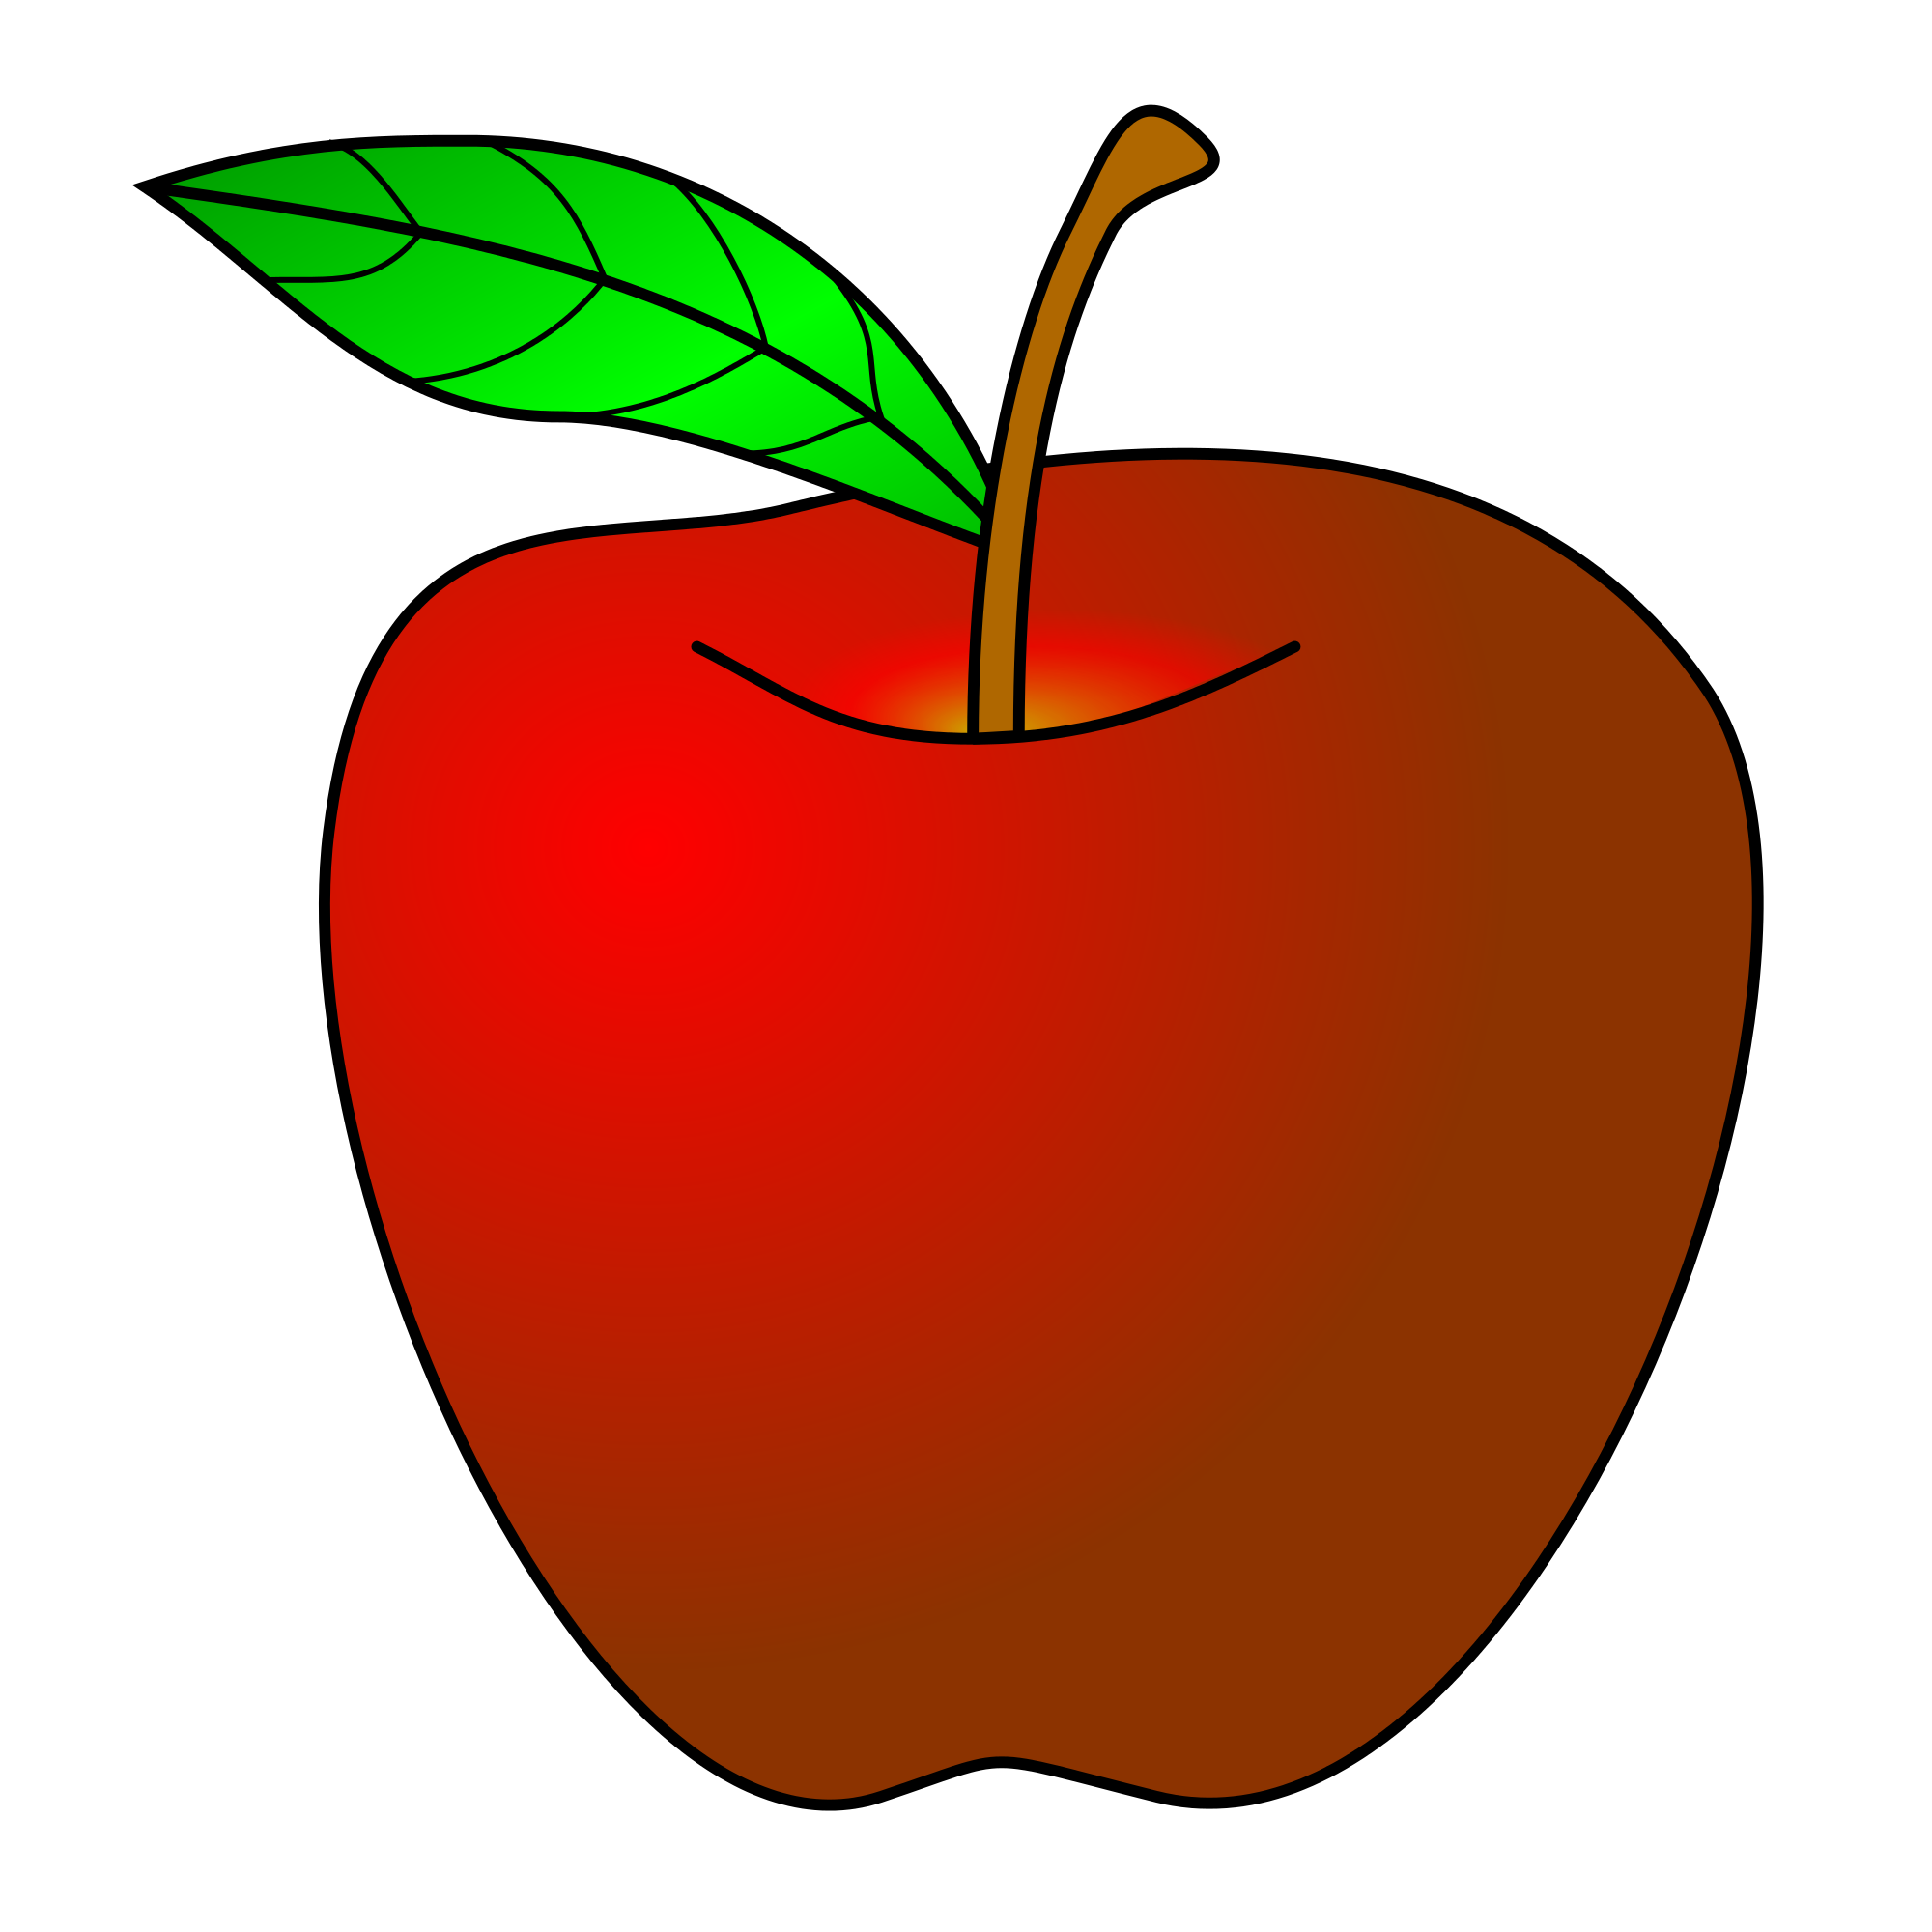 Person giving an apple clipart image free library File:Red apple.svg - Wikimedia Commons image free library